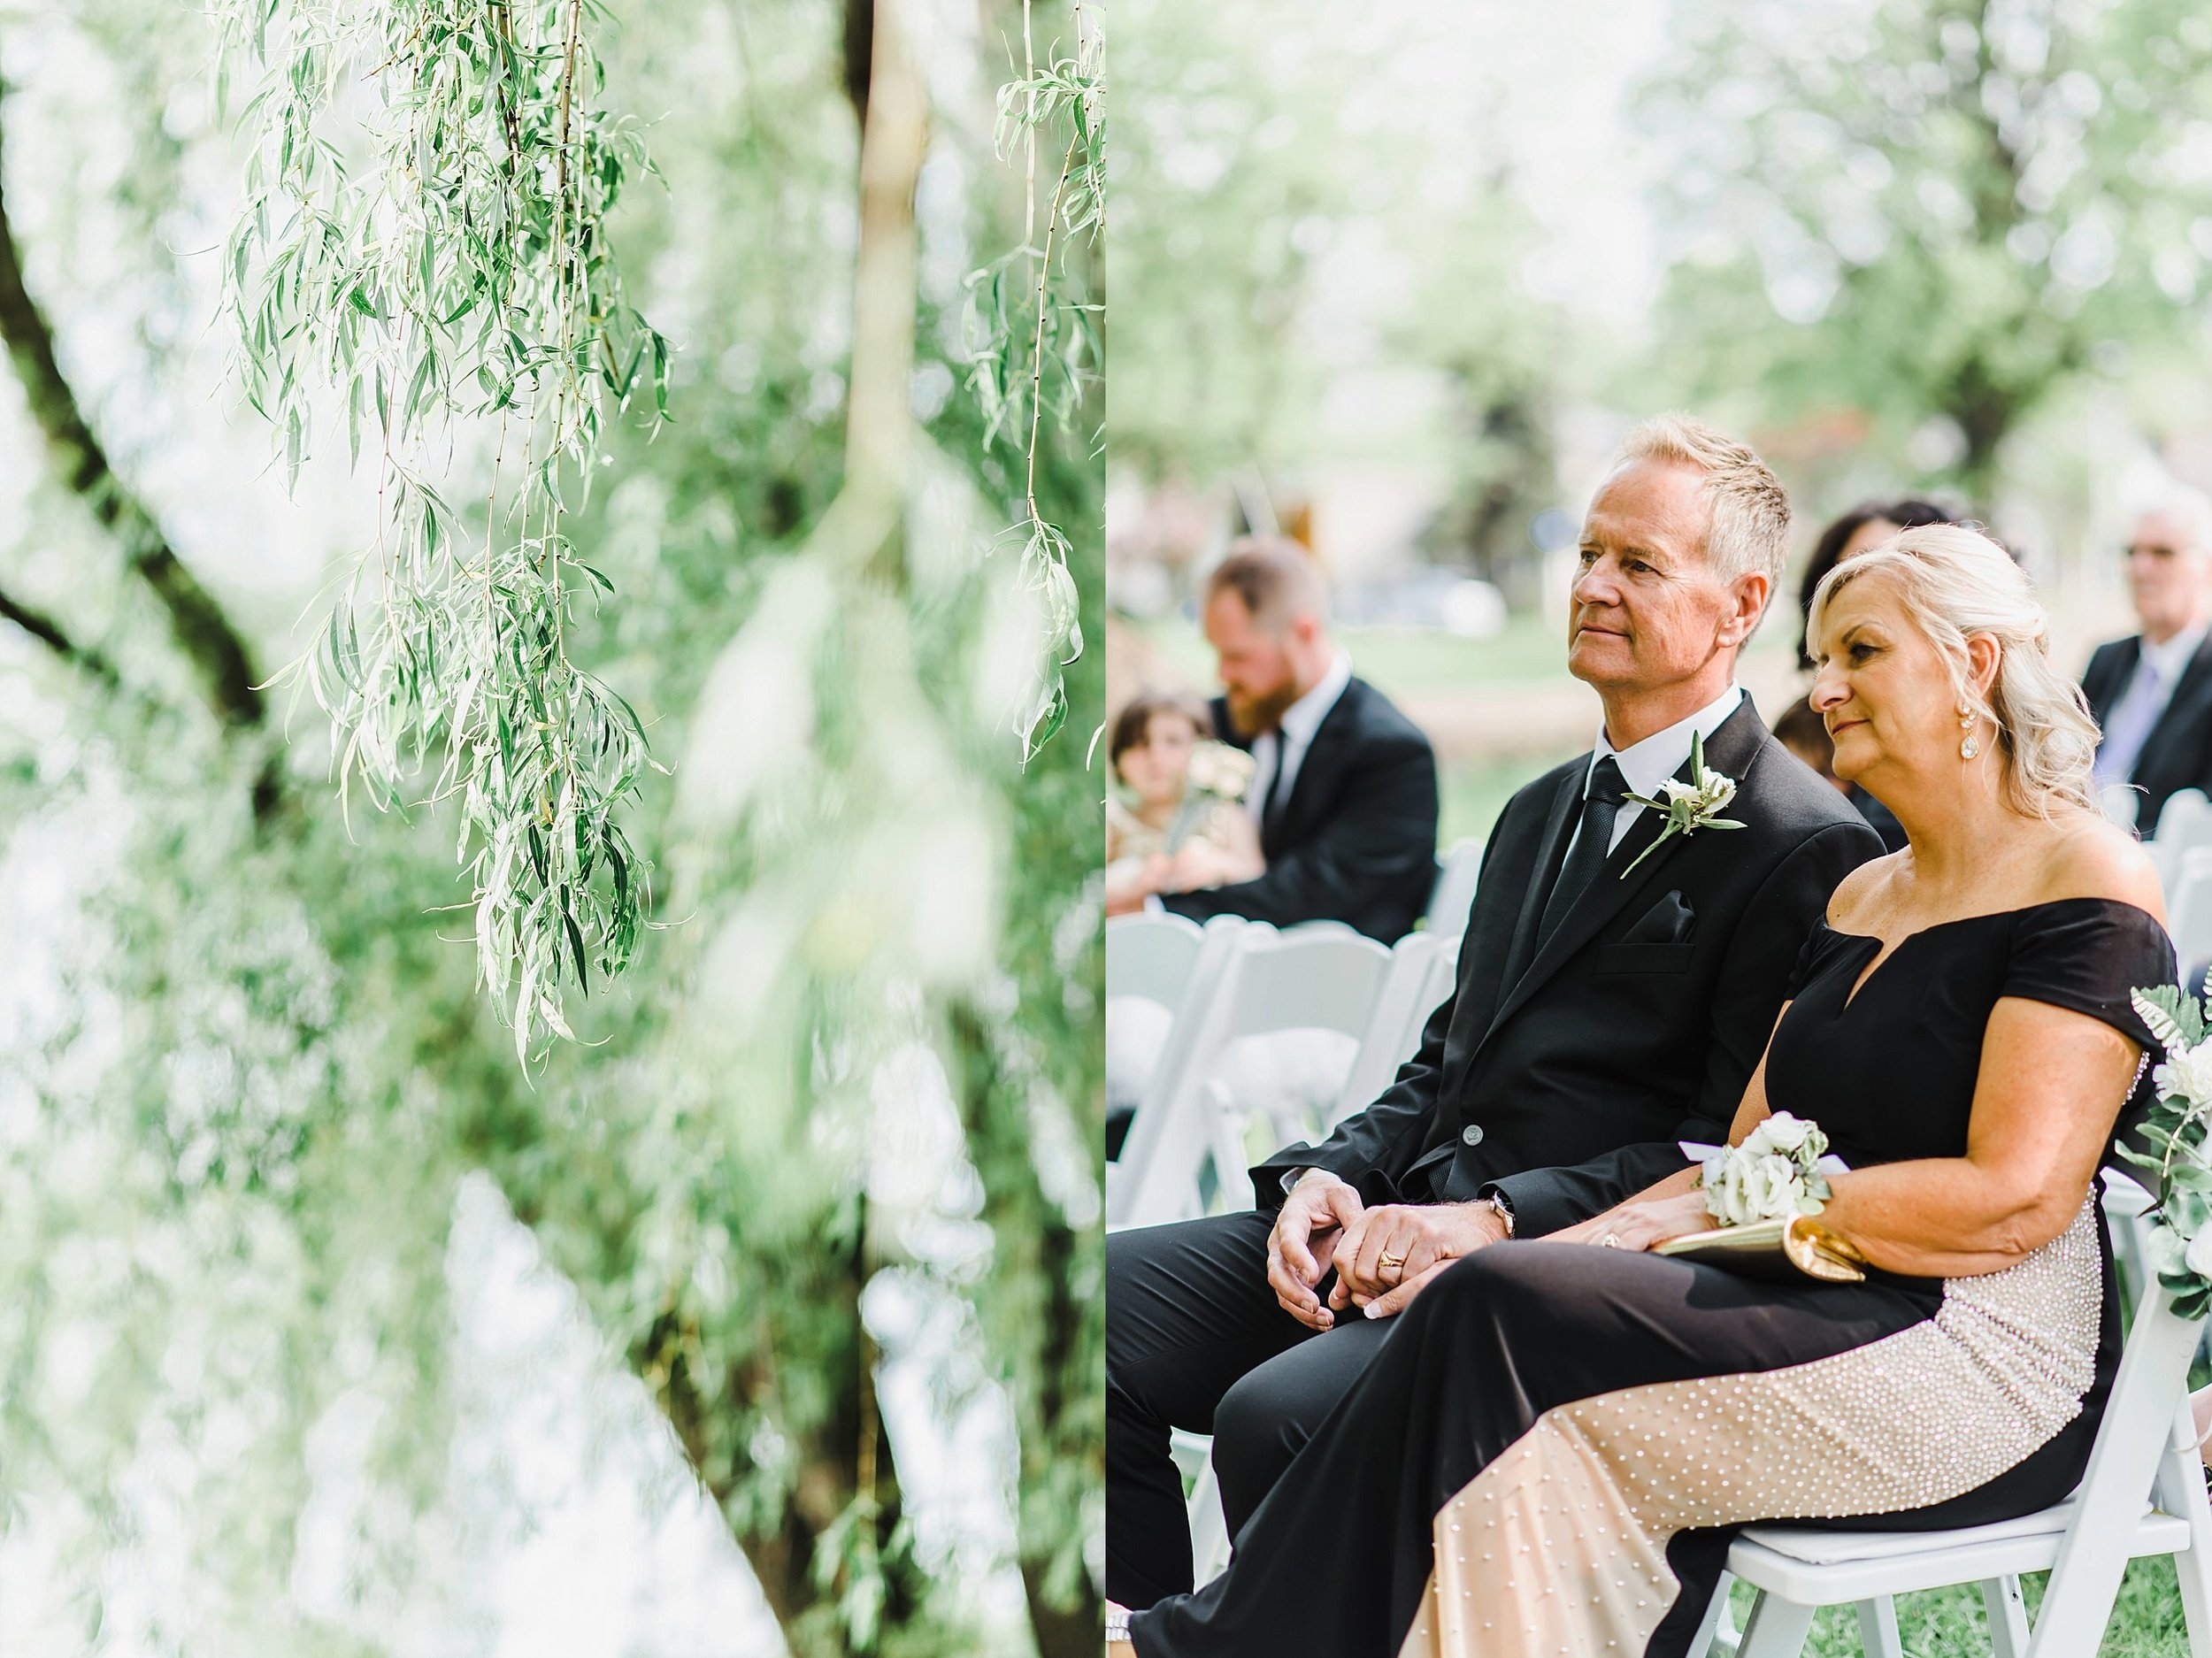 light airy indie fine art ottawa wedding photographer | Ali and Batoul Photography_0379.jpg